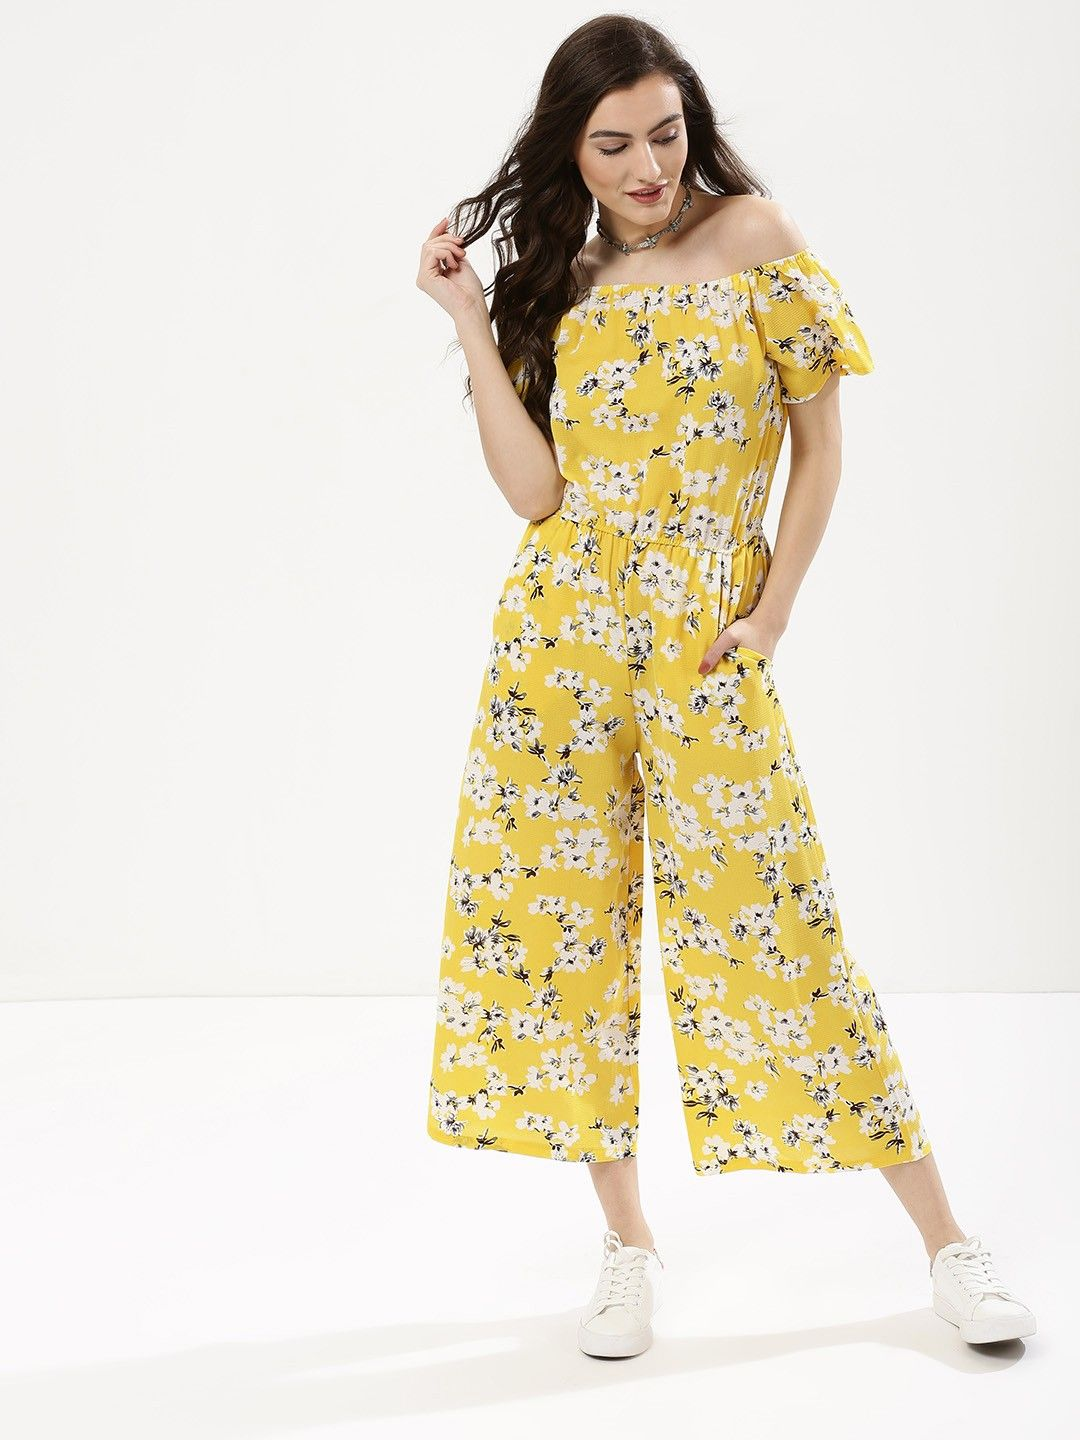 a784a44fd4 Buy Floral Print Bardot Culotte Jumpsuit For Women - Women's Lemon ...